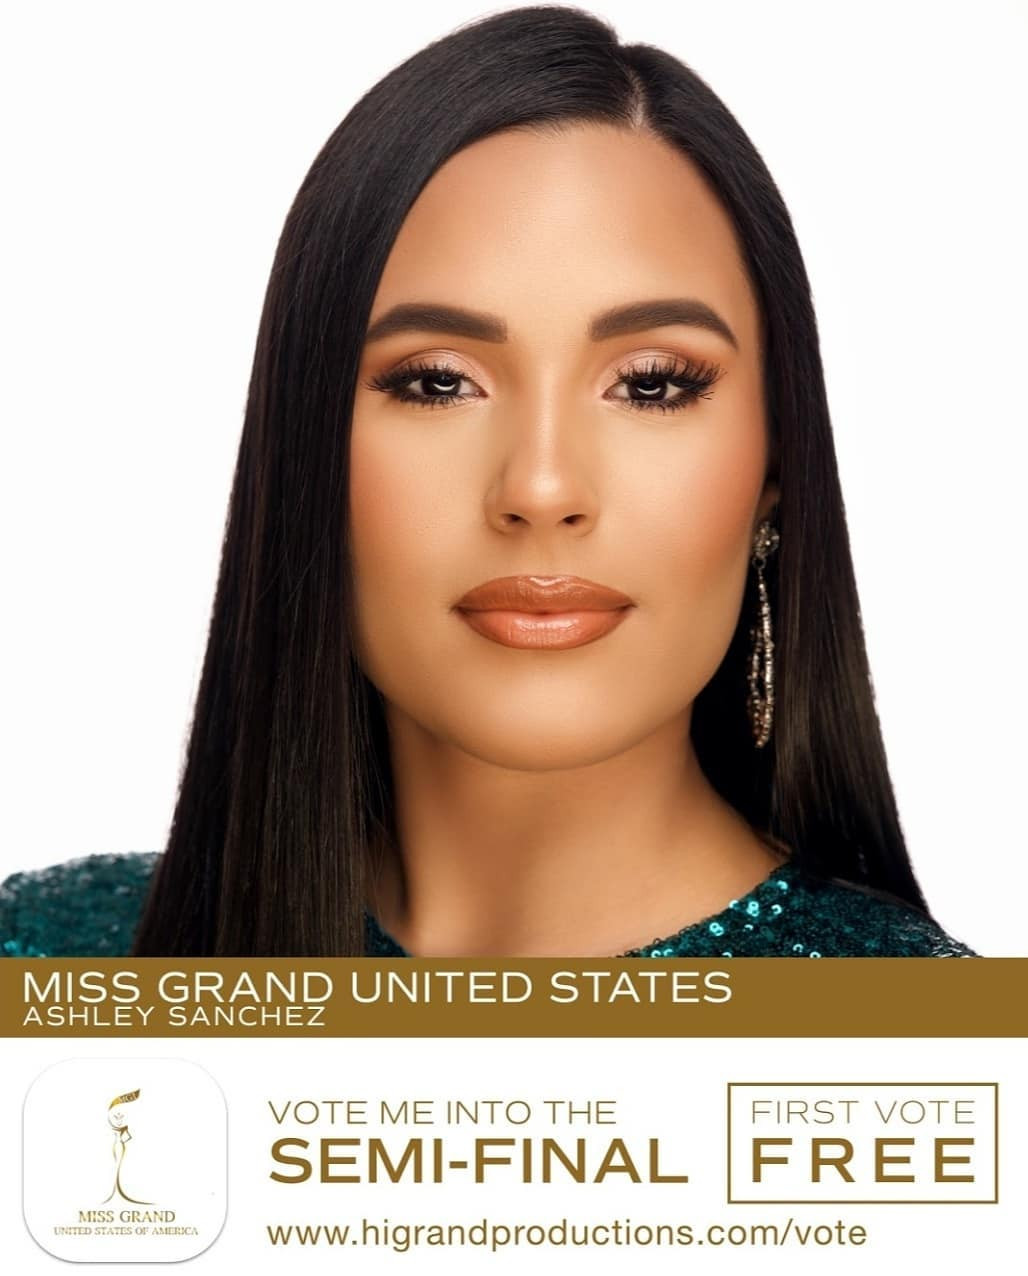 madison callaghan vence miss grand usa 2021. N6by6F